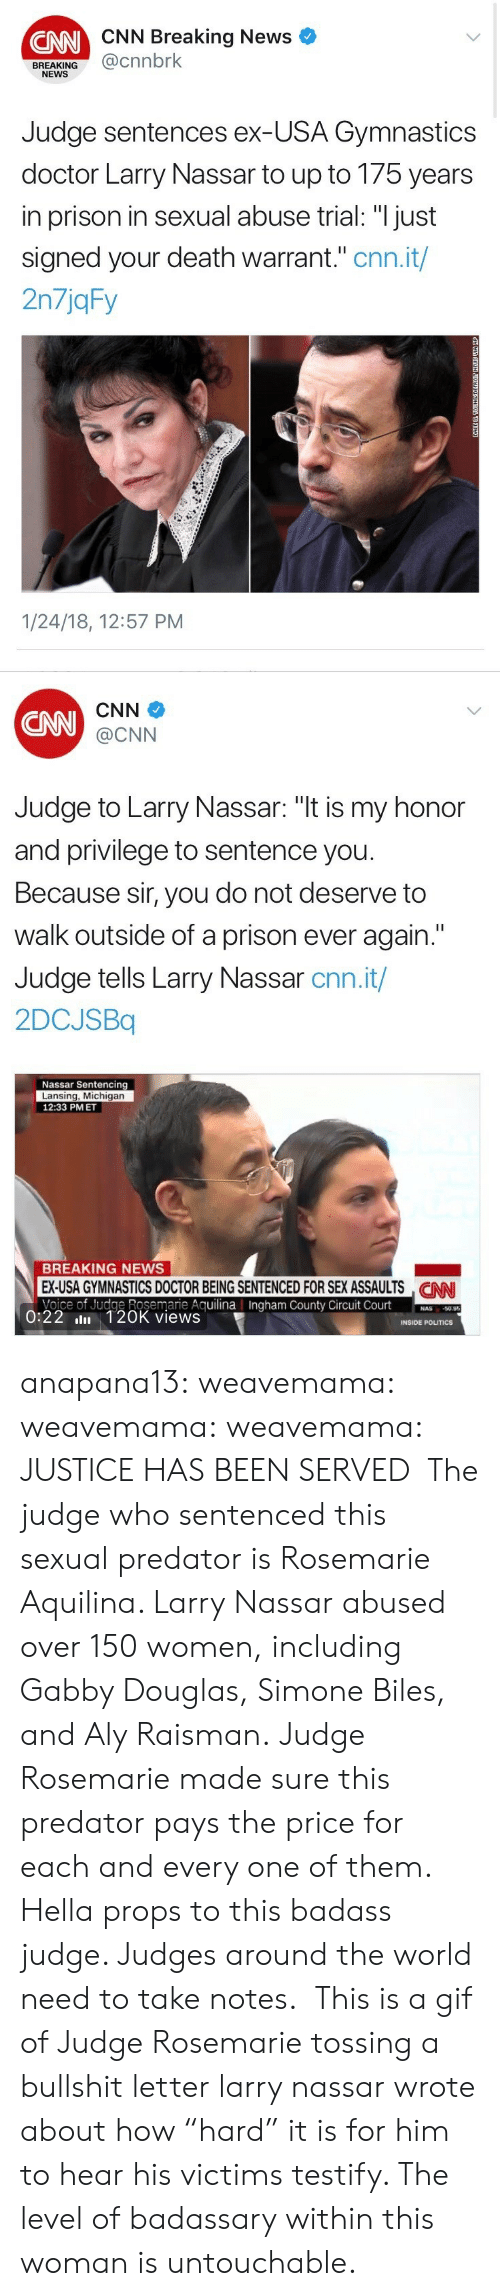 "Usa Gymnastics: CNN Breaking News  CNN  BREAKING@cnnbrk  NEWS  Judge sentences ex-USA Gymnastics  doctor Larry Nassar to up to 175 years  in prison in sexual abuse trial: ""I just  signed your death warrant."" cnn.it/  2n7jqFy  1/24/18, 12:57 PM   CNN  CNN  @CNN  Judge to Larry Nassar: ""t is my honor  and privilege to sentence you  Because sir, you do not deserve to  walk outside of a prison ever again.""  Judge tells Larry Nassar cnn.it/  2DCJSBq  Nassar Sentencing  Lansing, Michigan  12:33 PMET  BREAKING NEWS  EX-USA GYMNASTICS DOCTOR BEING SENTENCED FOR SEX ASSAULTS NN  Voice of Judge Rosemarie AguilinaIngham County Circuit Court0  CAN  County  50.95  0:22 